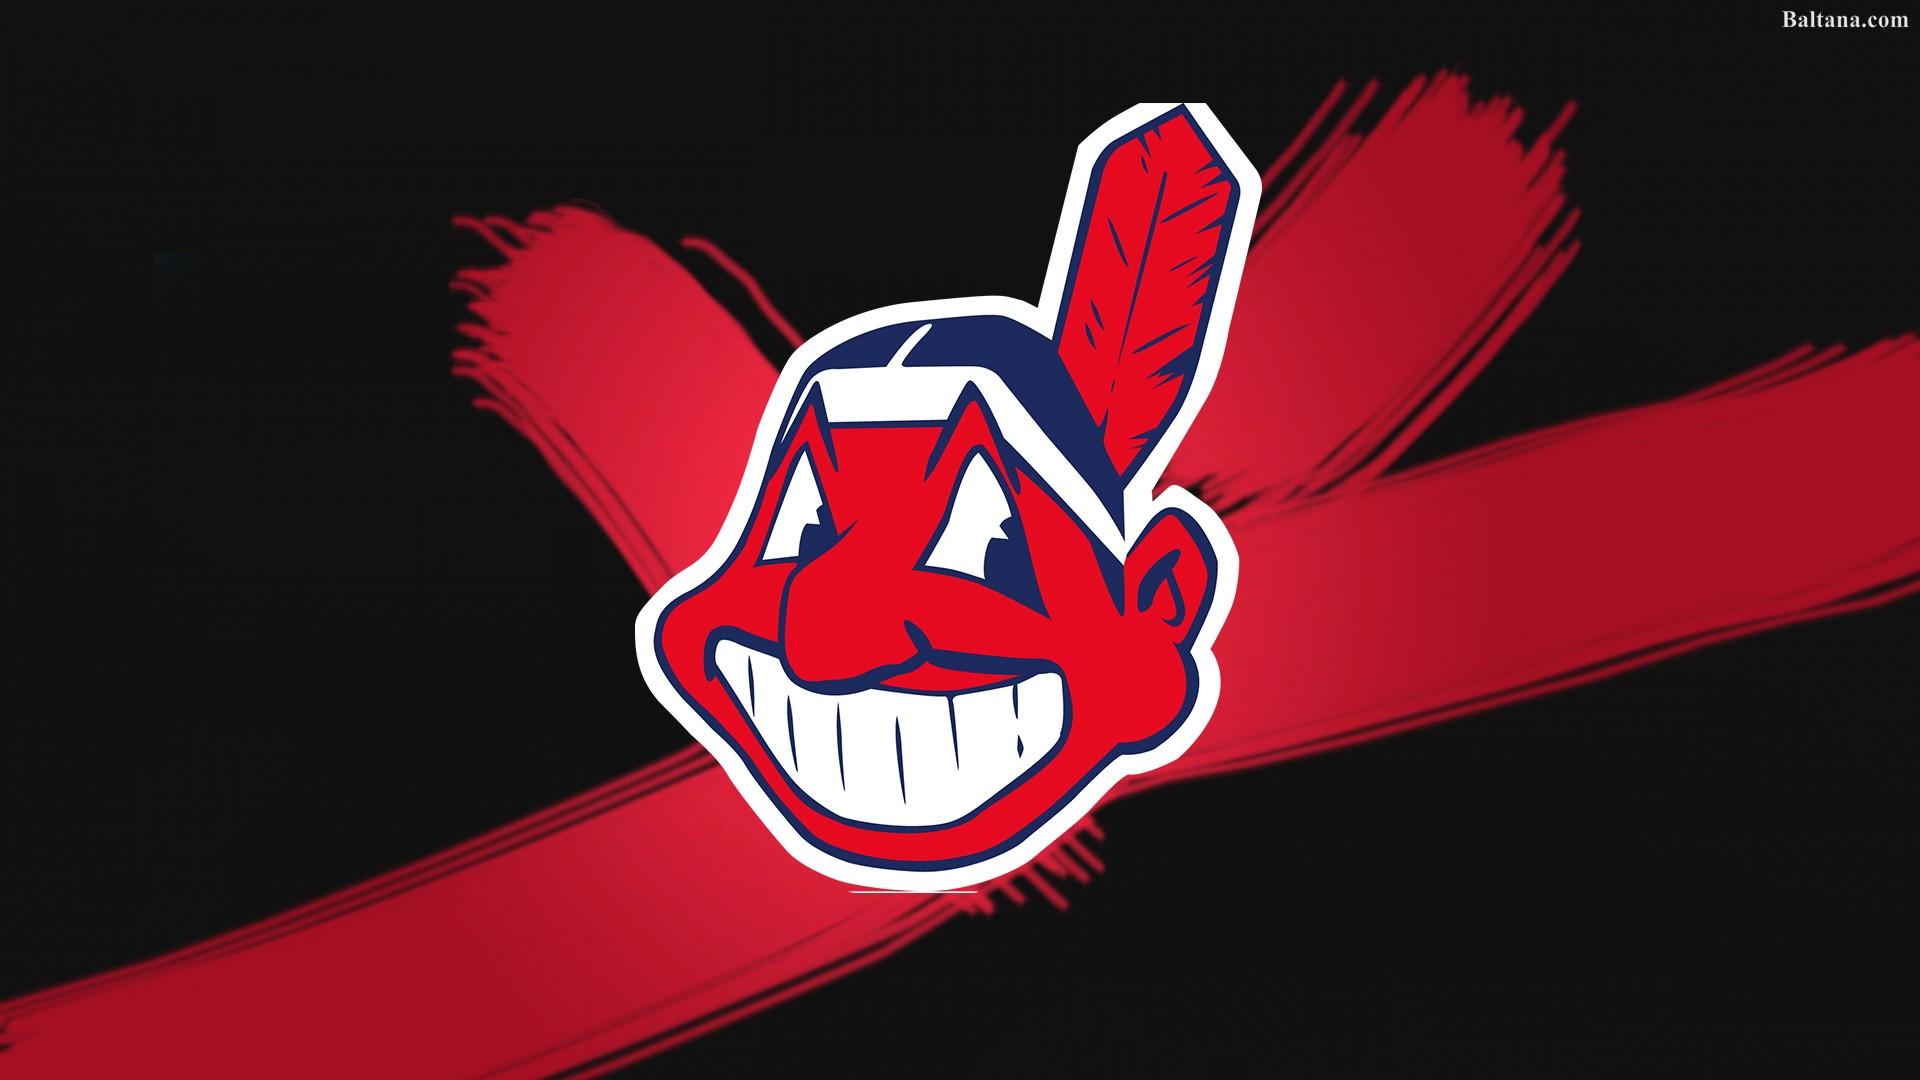 1920x1080 - Cleveland Indians Wallpapers 16